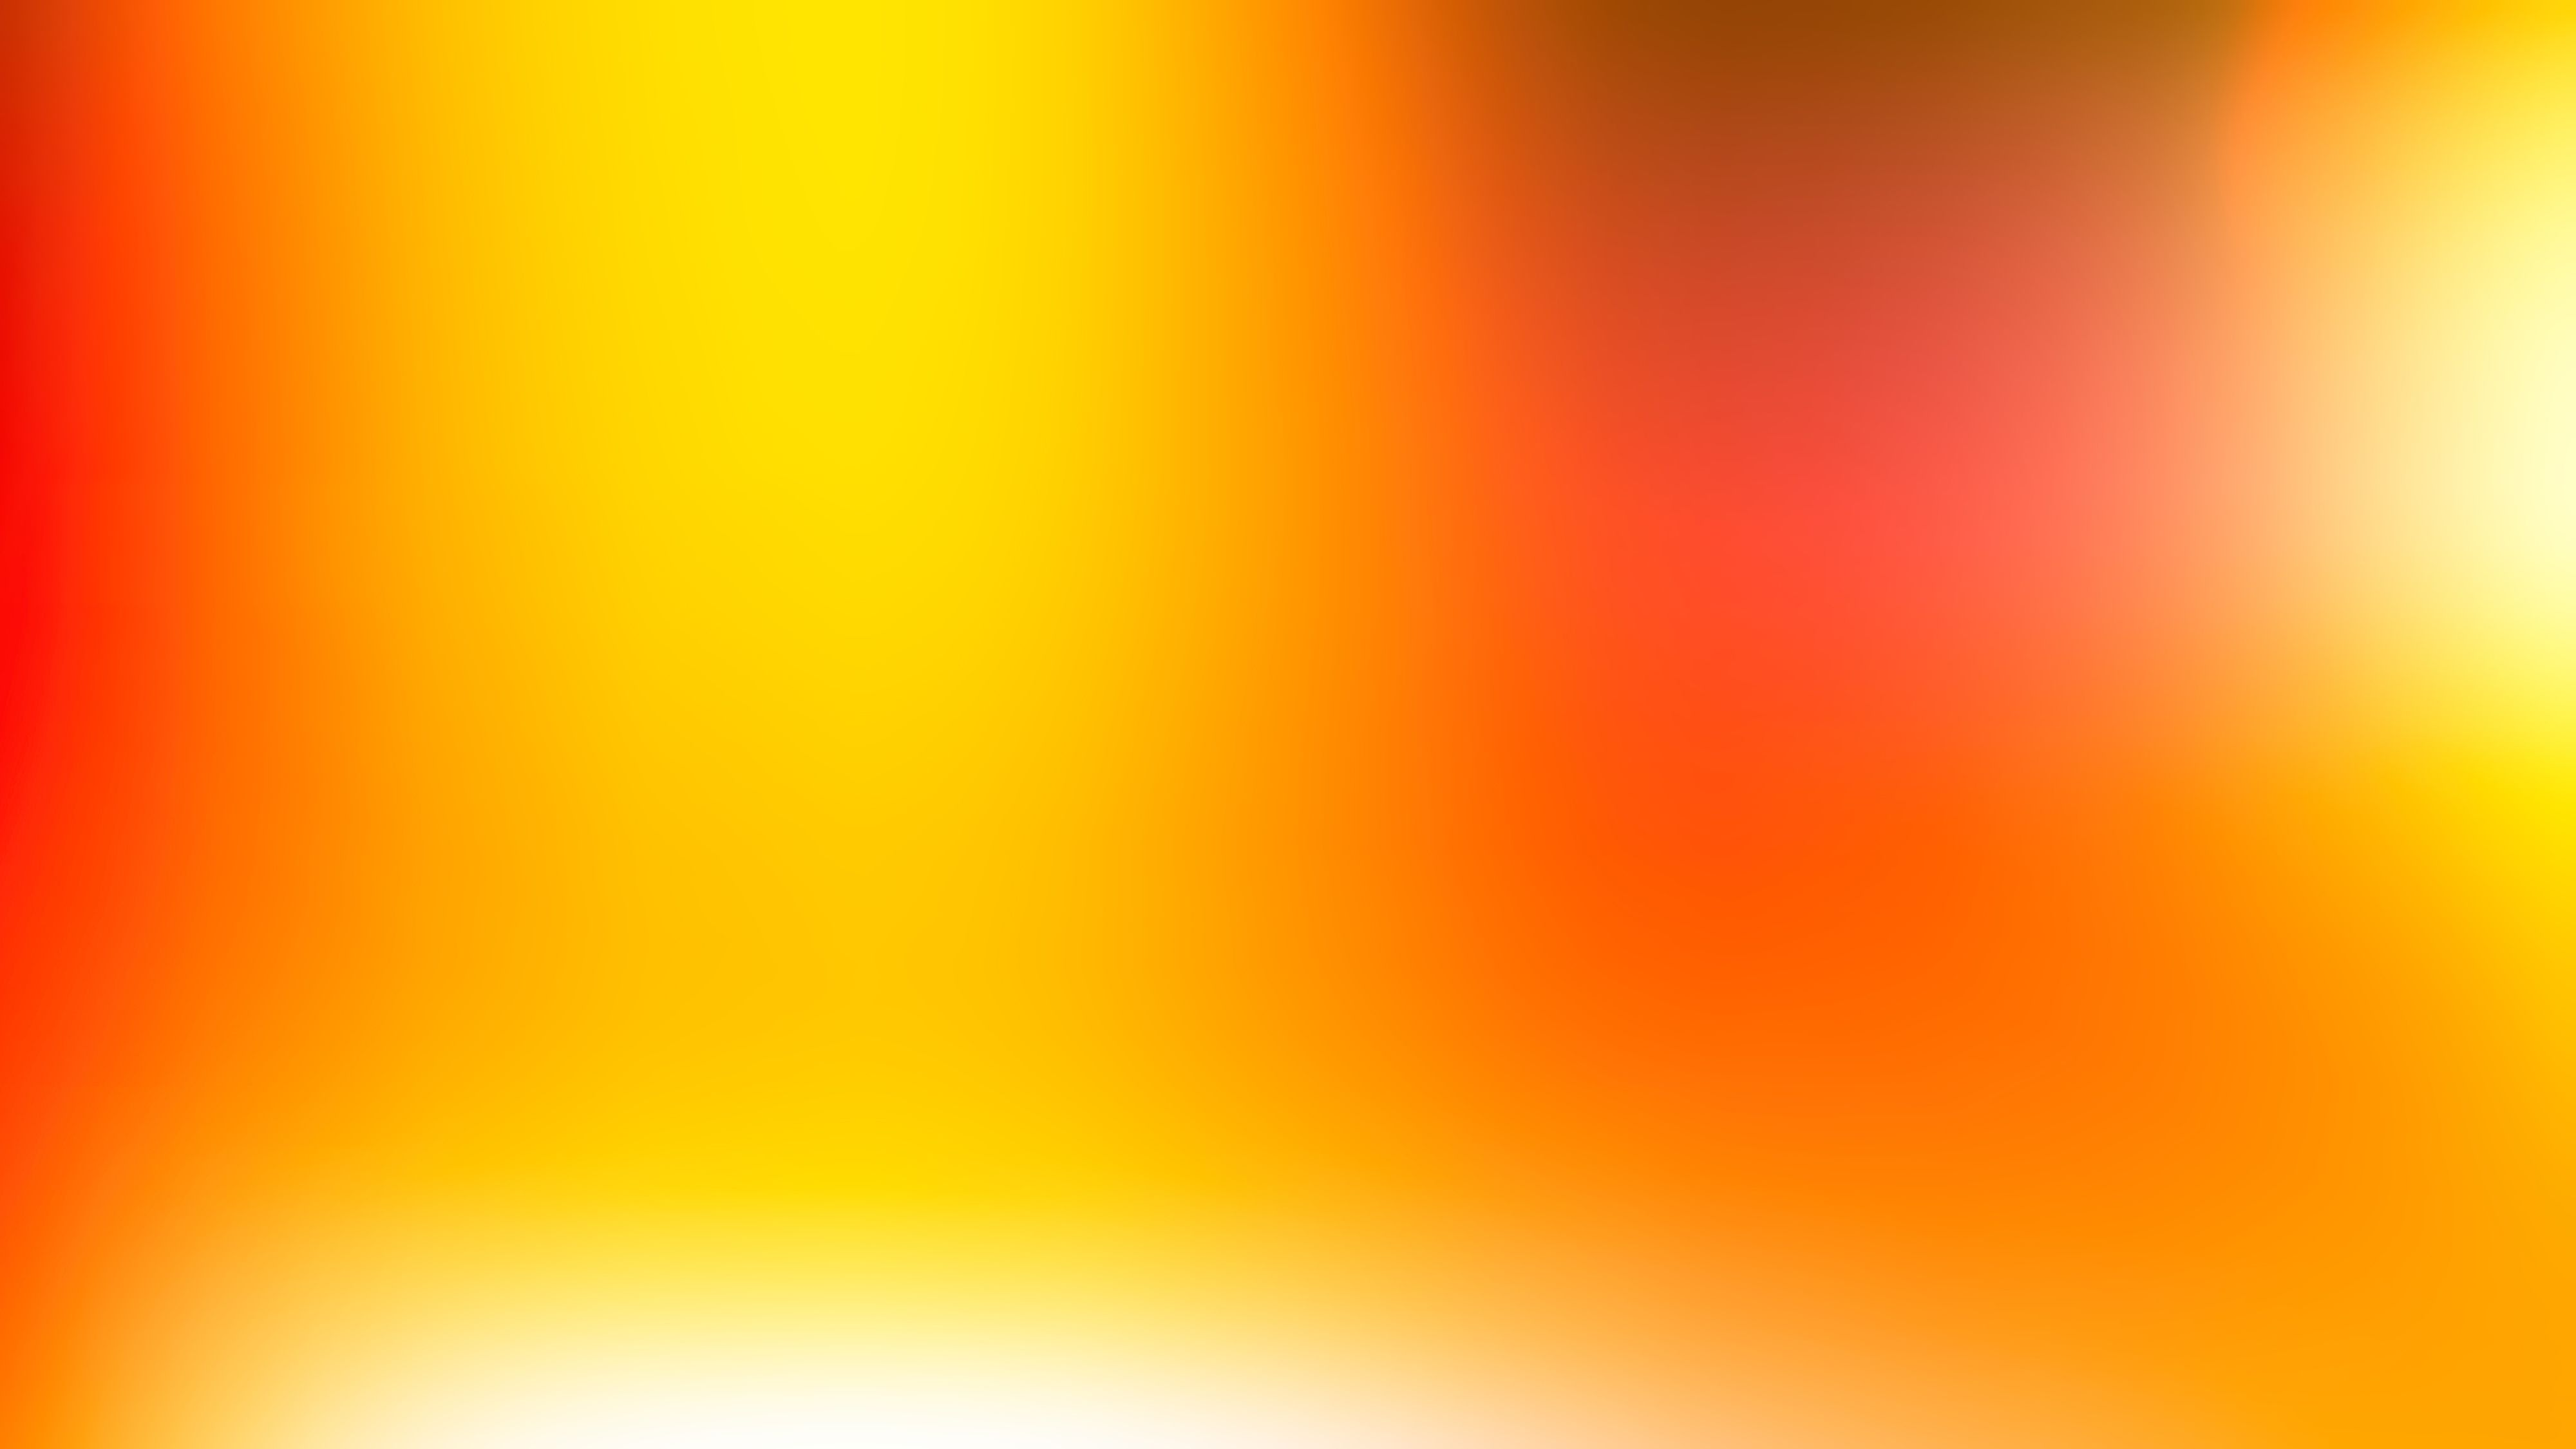 Orange Yellow Red Free Background Image Design Graphicdesign Creative Wallpaper Backgroun Free Background Images Red Background Images Red Background